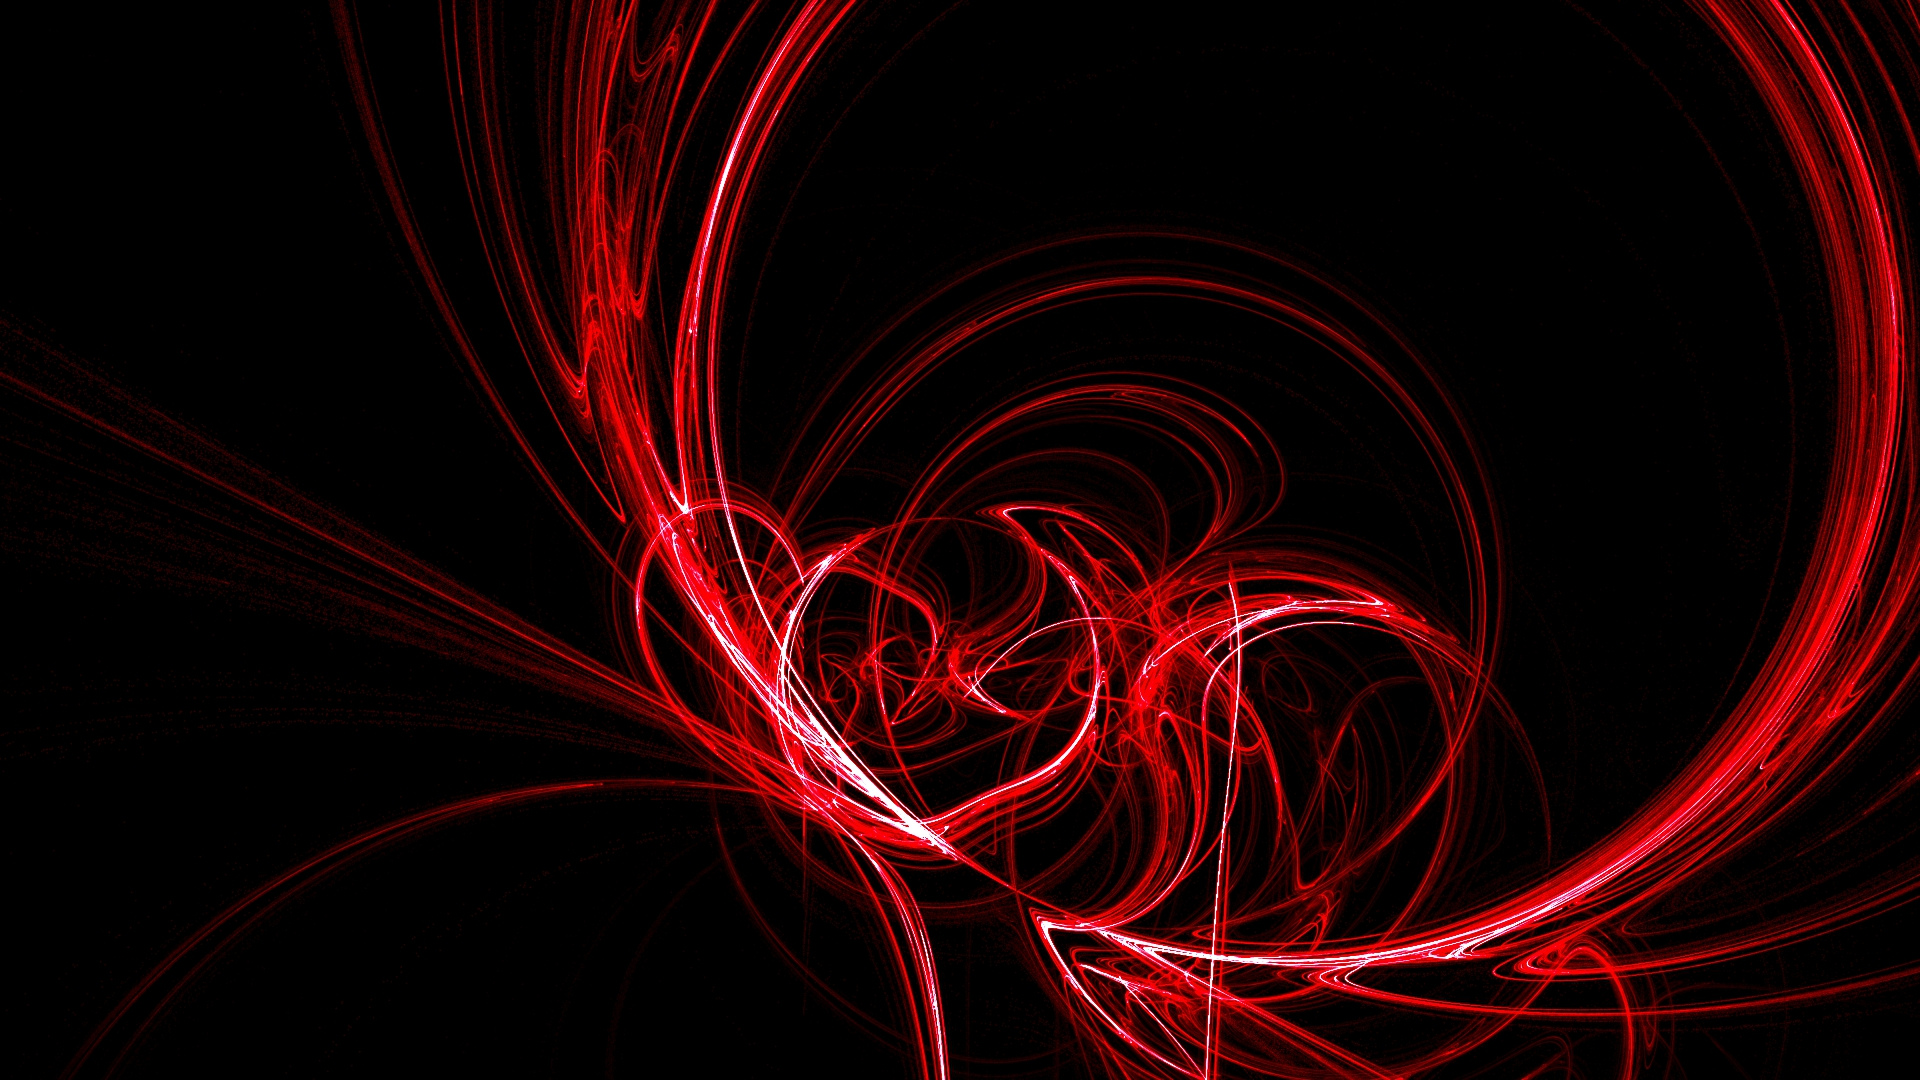 abstract wallpaper red images 1920x1080